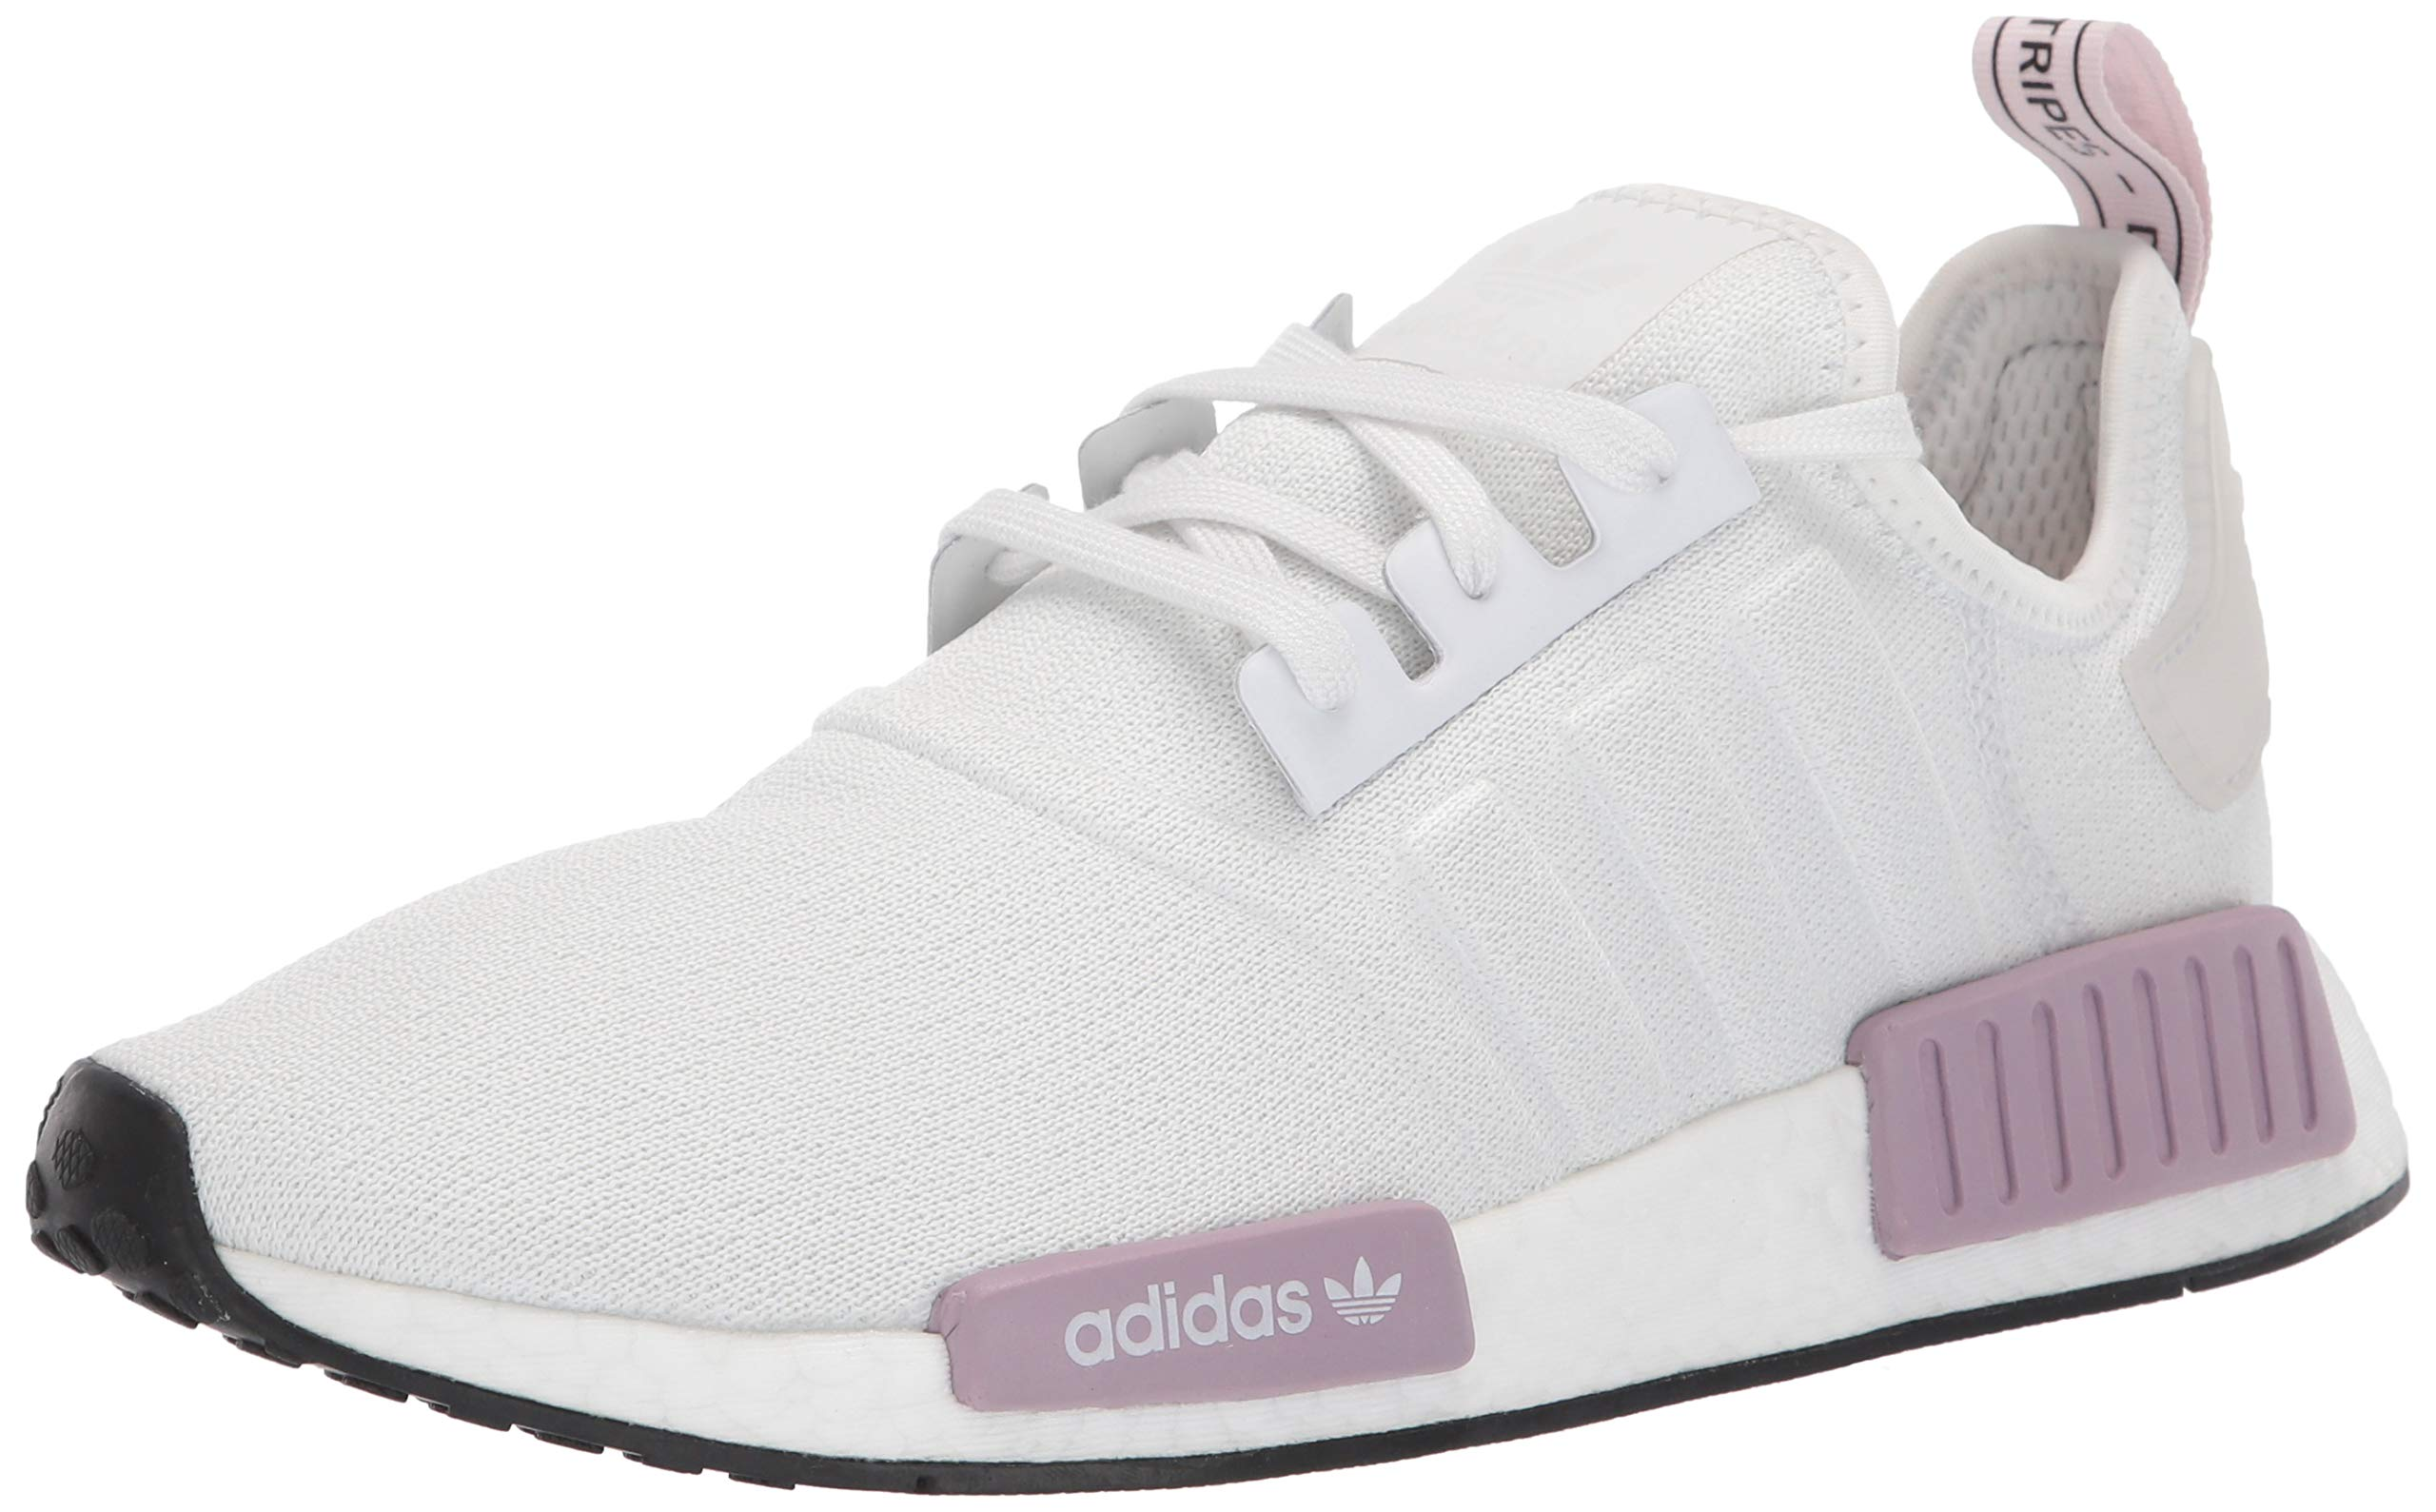 adidas Originals Women's NMD_R1 Running Shoe, Crystal White/Orchid Tint, 6.5 M US